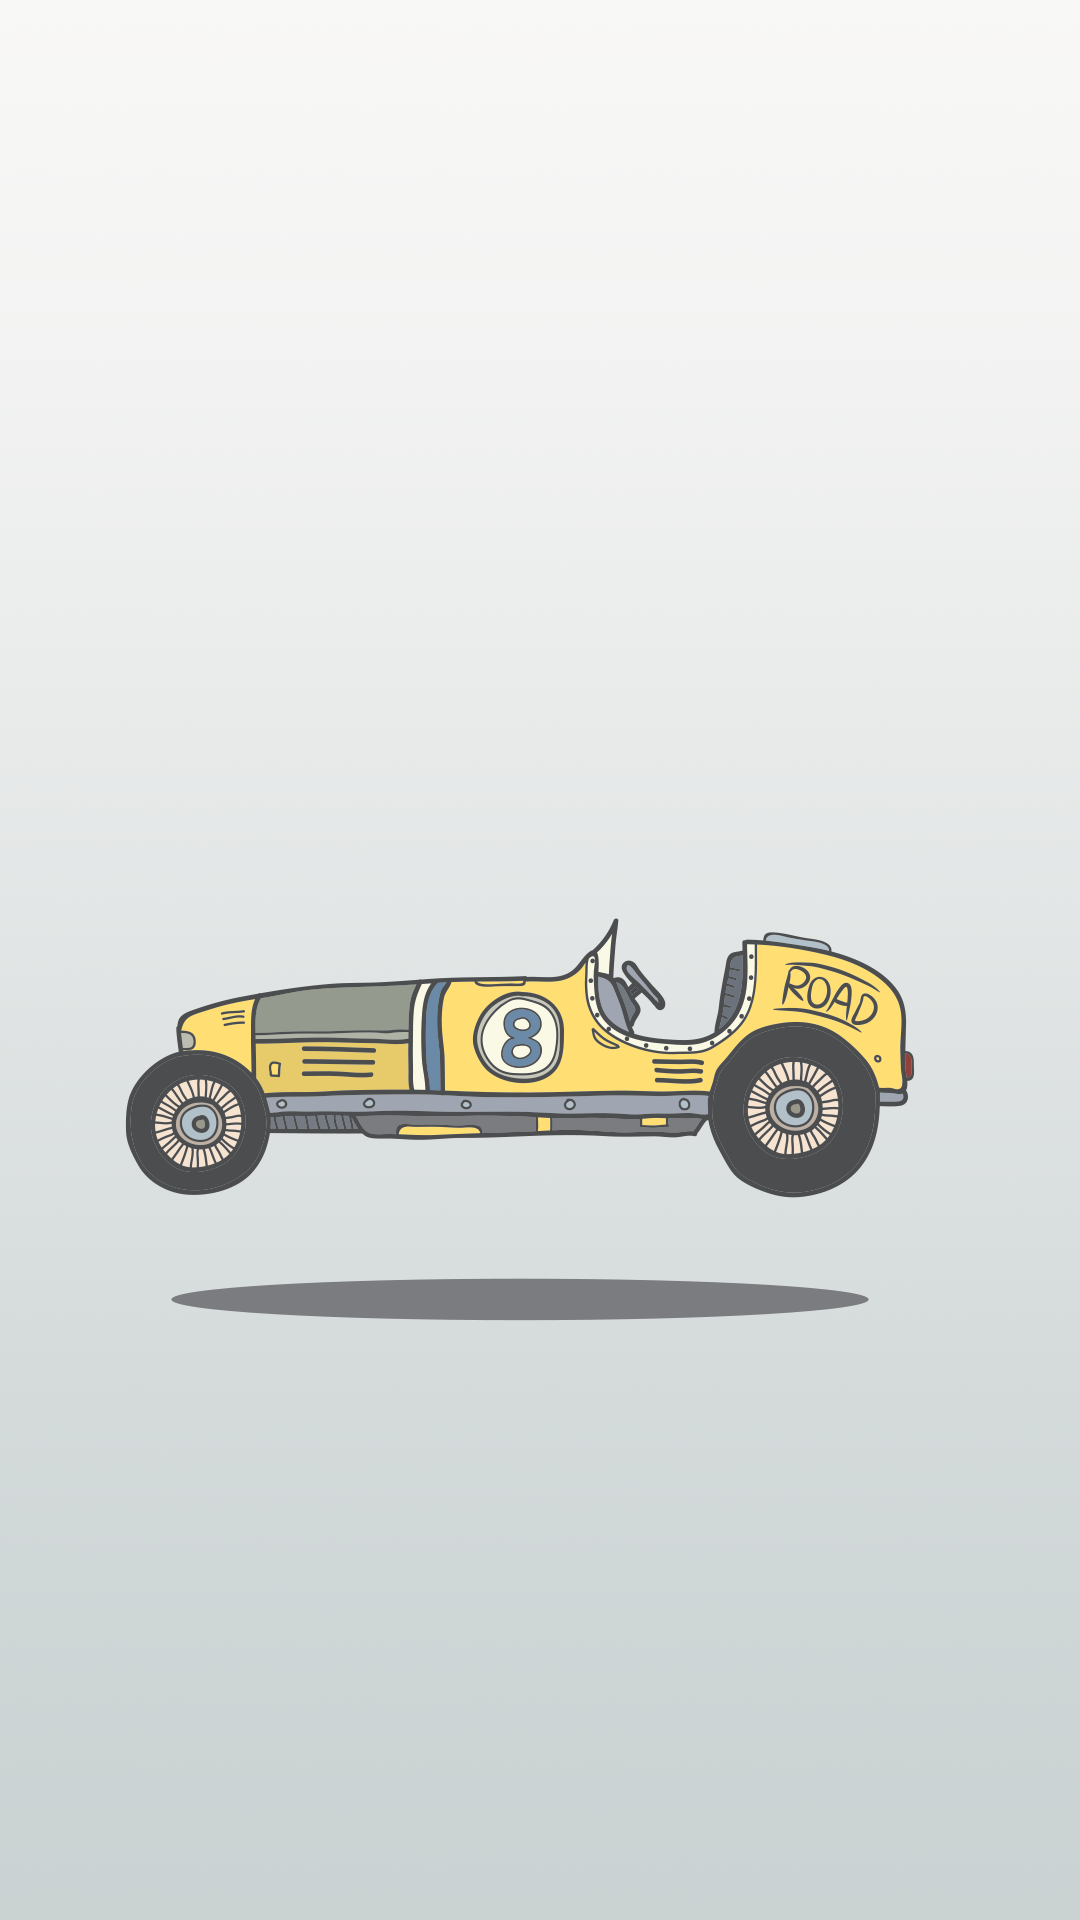 Minimal Iphone Wallpaper Vintage Race Car Iphone Wallpaper Vintage Wallpapers Vintage Vintage Racing